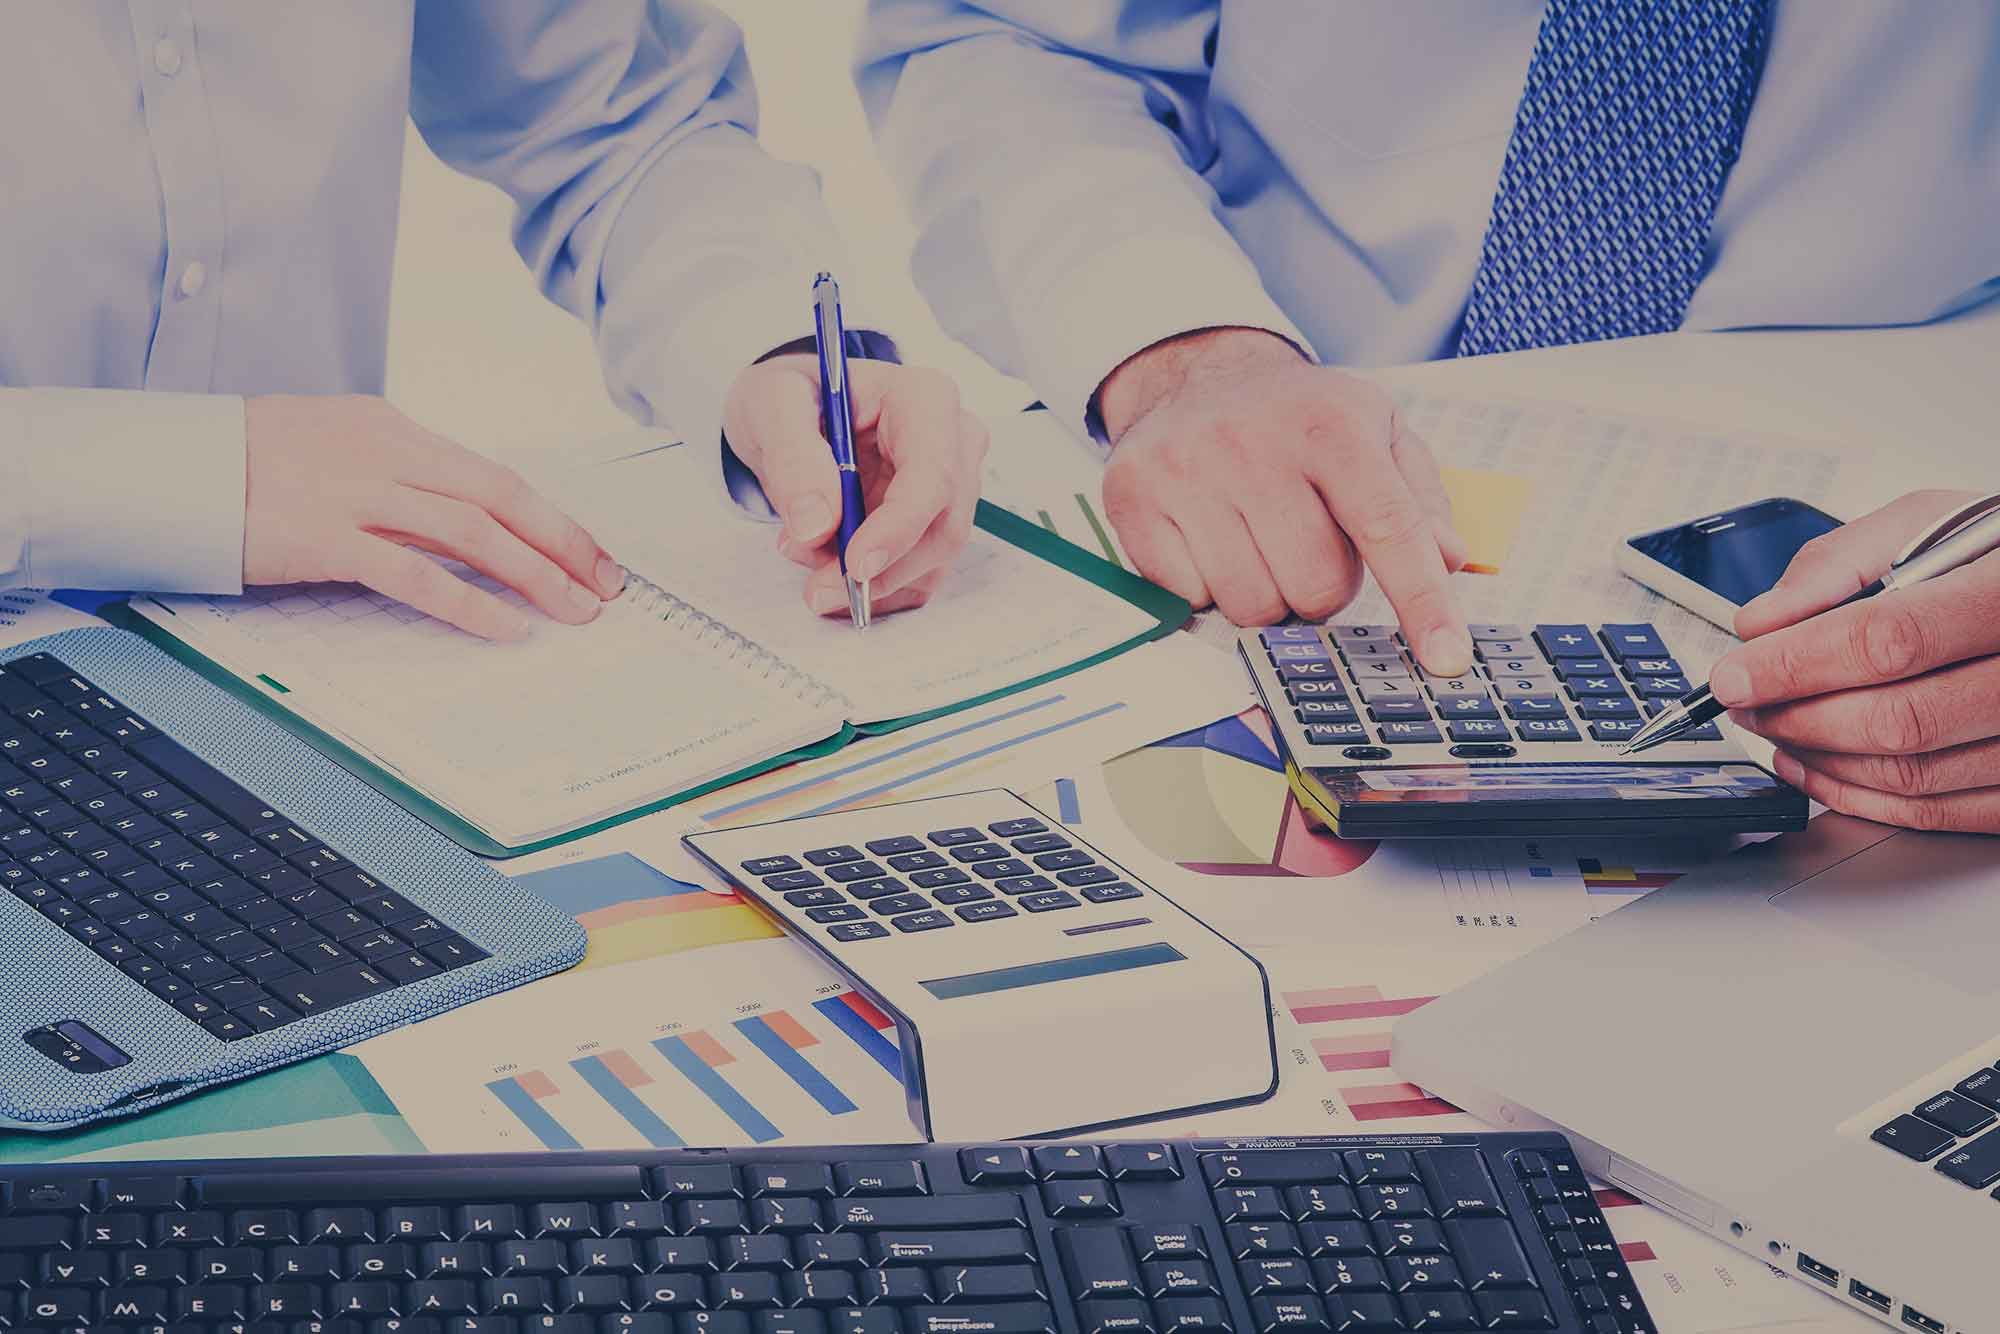 How to Purchase an EHR System: 3 Simple Steps to Stay on Budget